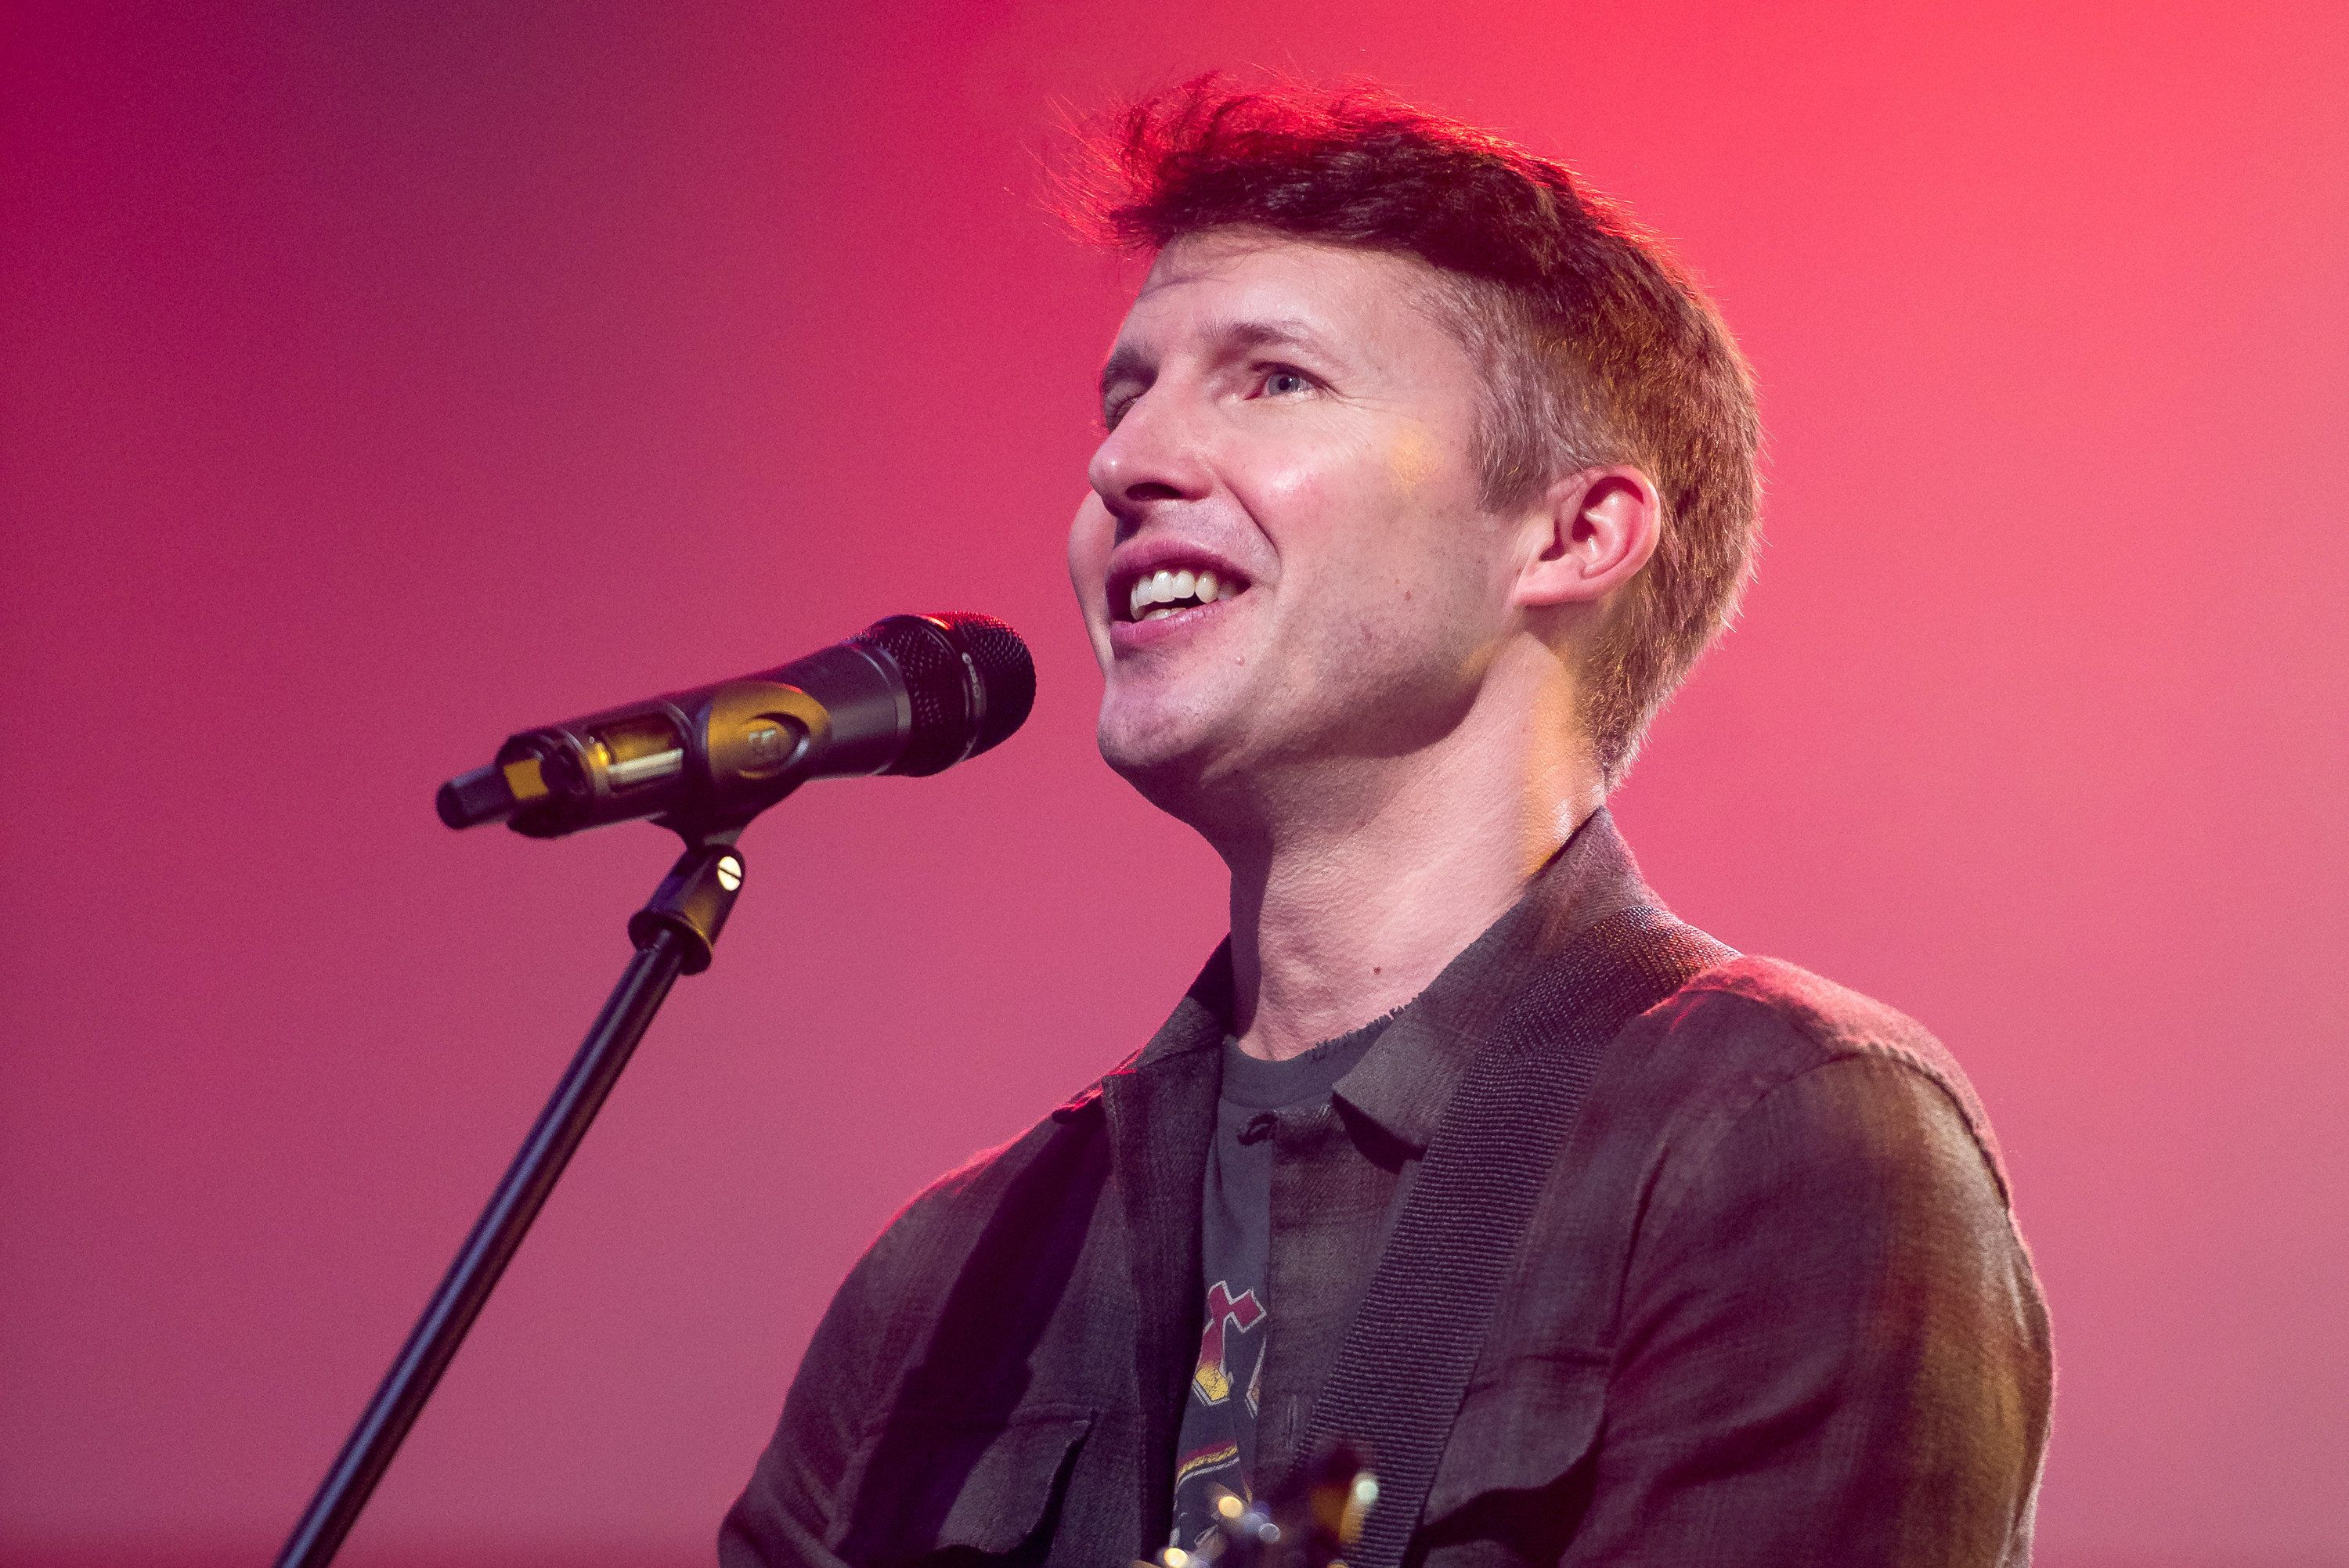 James Blunt's 'You're Beautiful' Doesn't Mean What You Think It